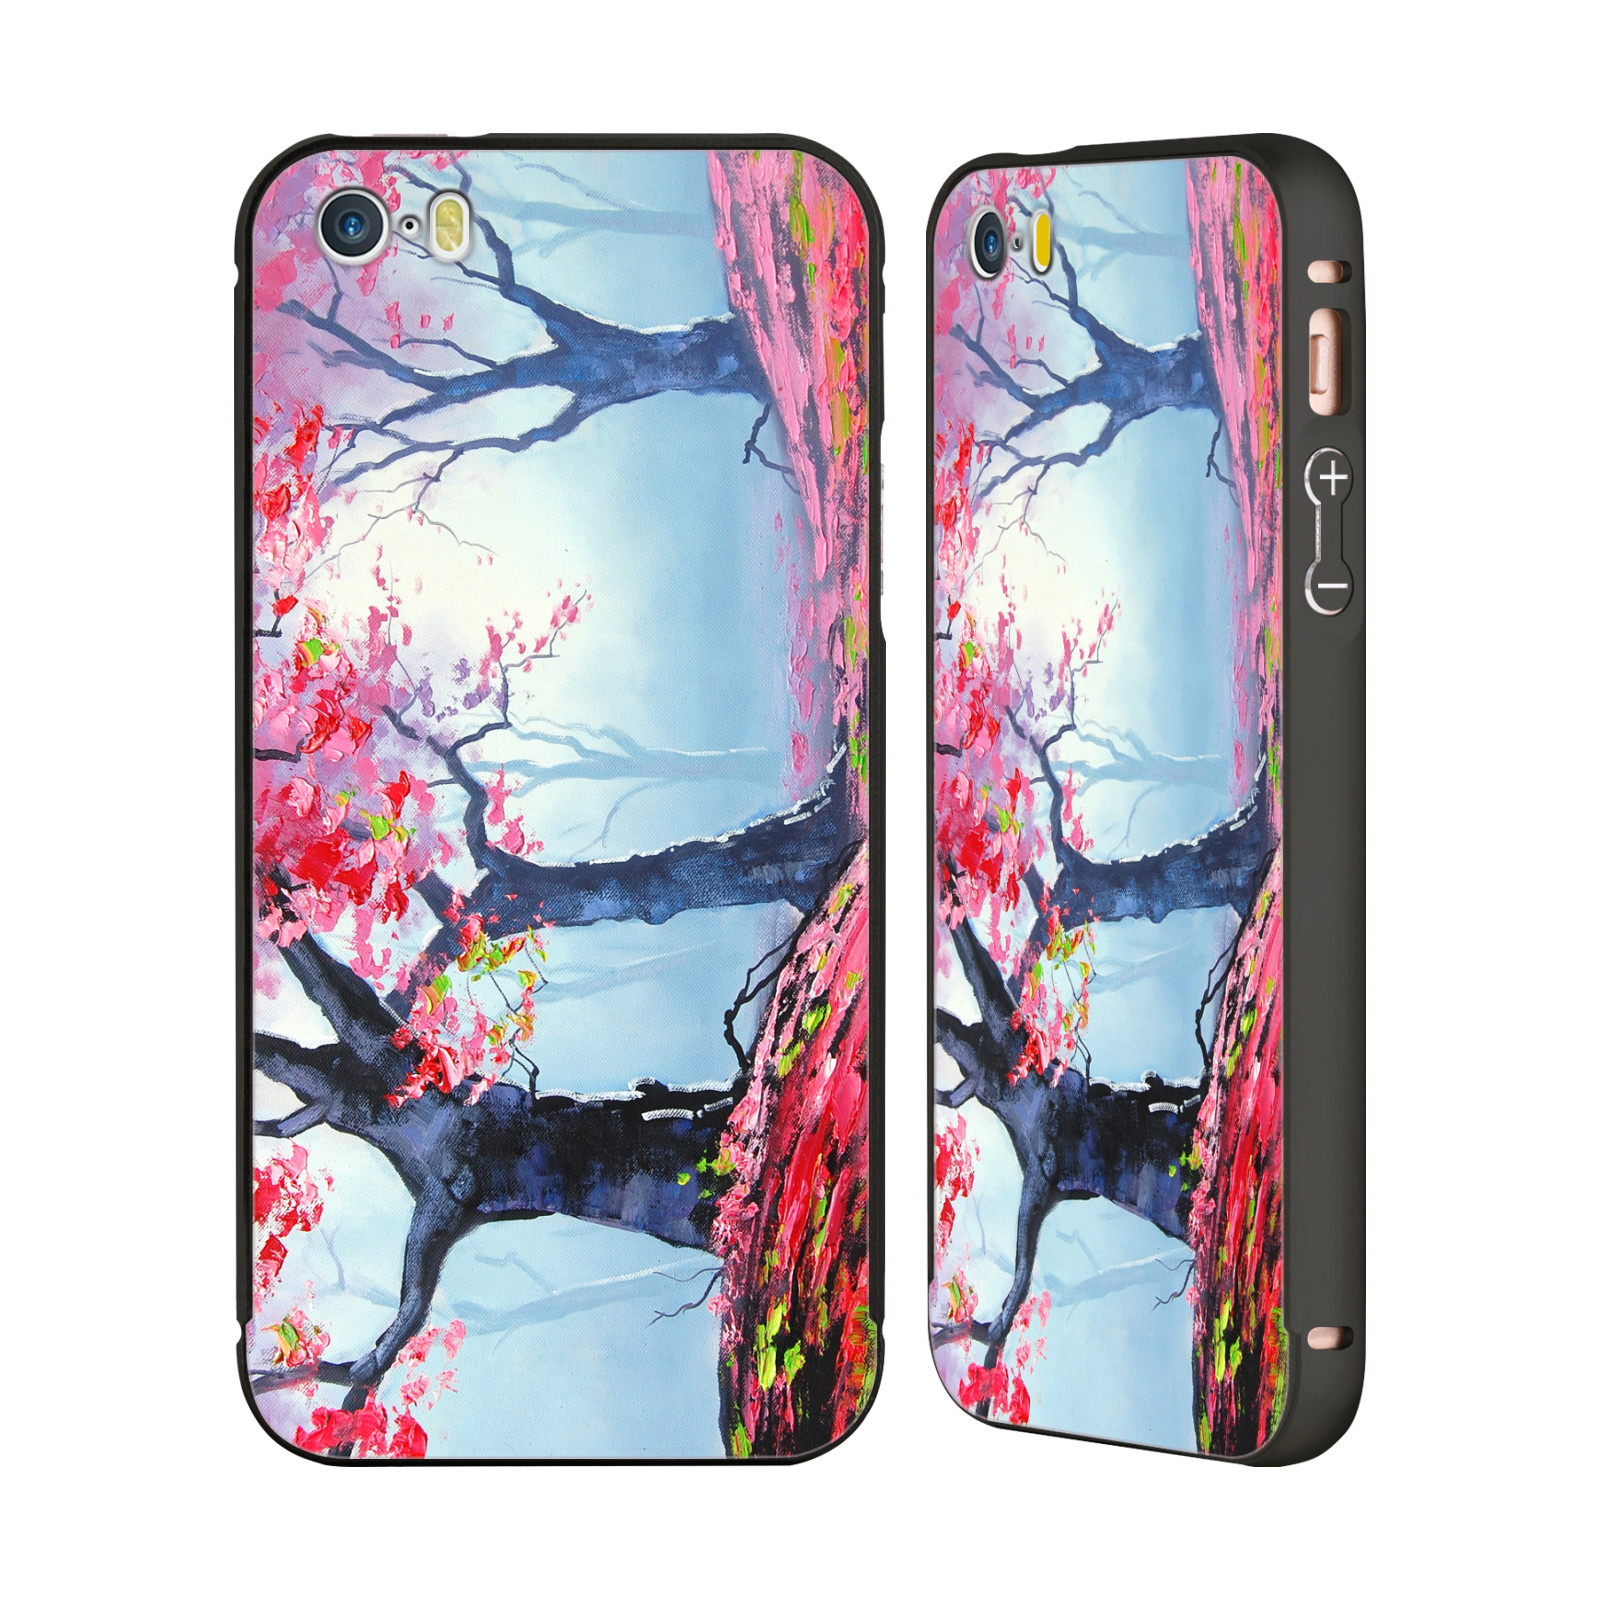 OFFICIAL-GRAHAM-GERCKEN-TREES-BLACK-BUMPER-SLIDER-CASE-FOR-APPLE-iPHONE-PHONES